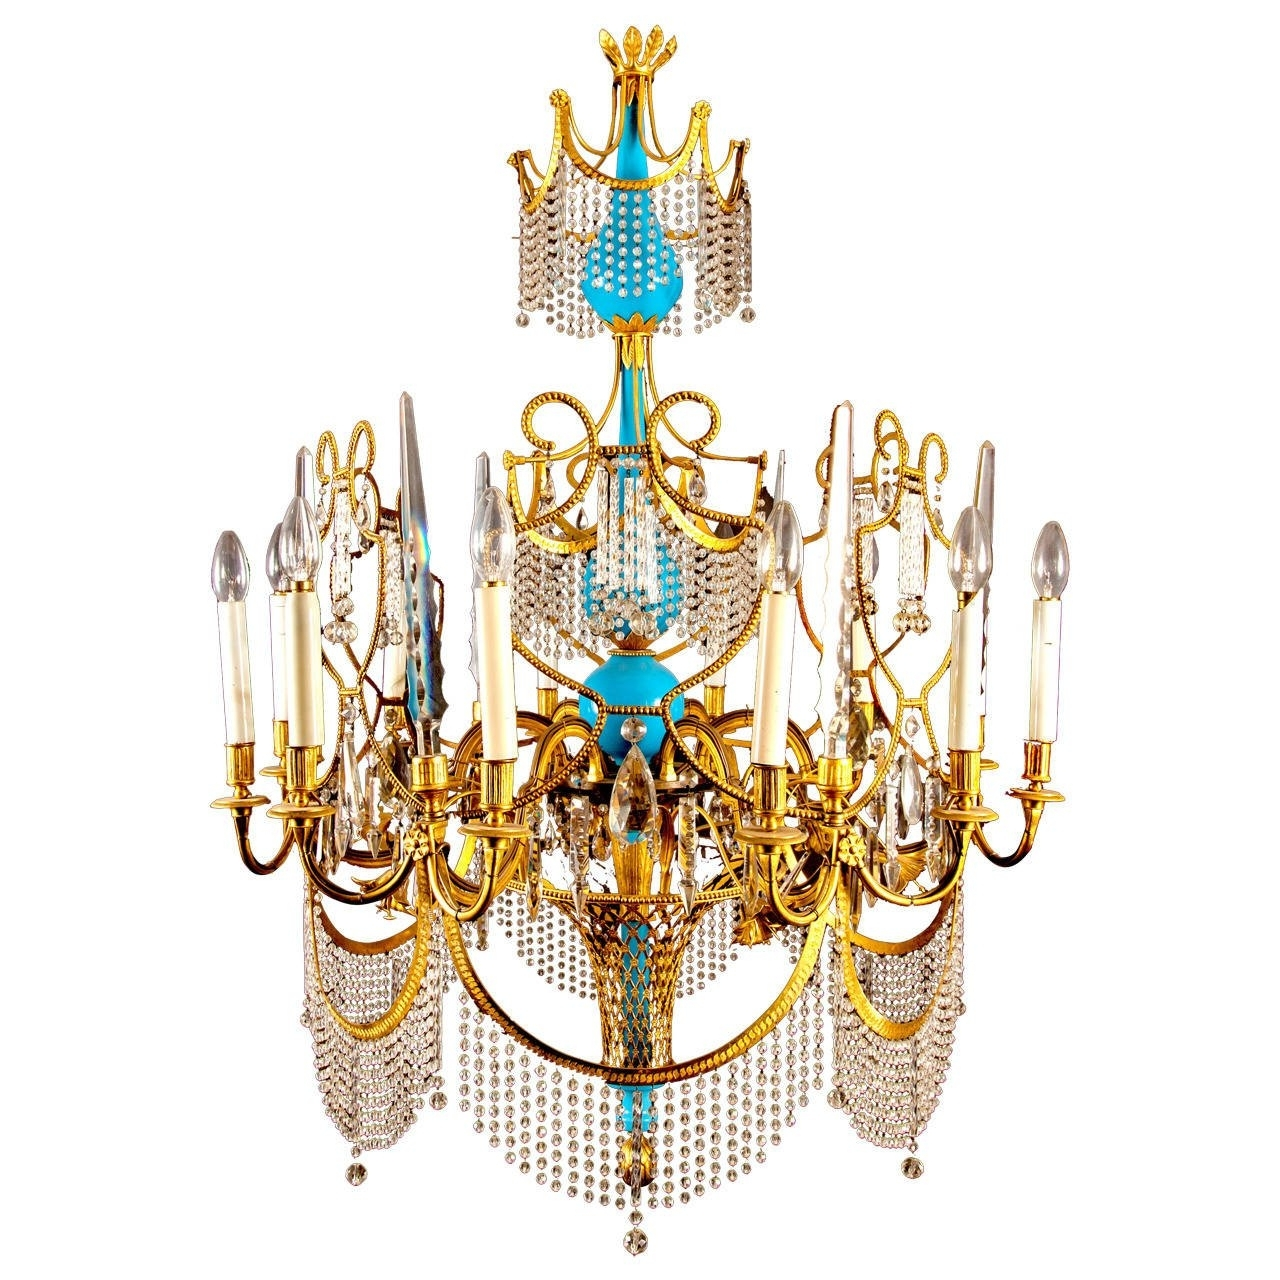 Russian Ormolu, Cut Glass And Blue Porcelain Empire Style Antique Within Most Current Glass Droplet Chandelier (View 18 of 20)